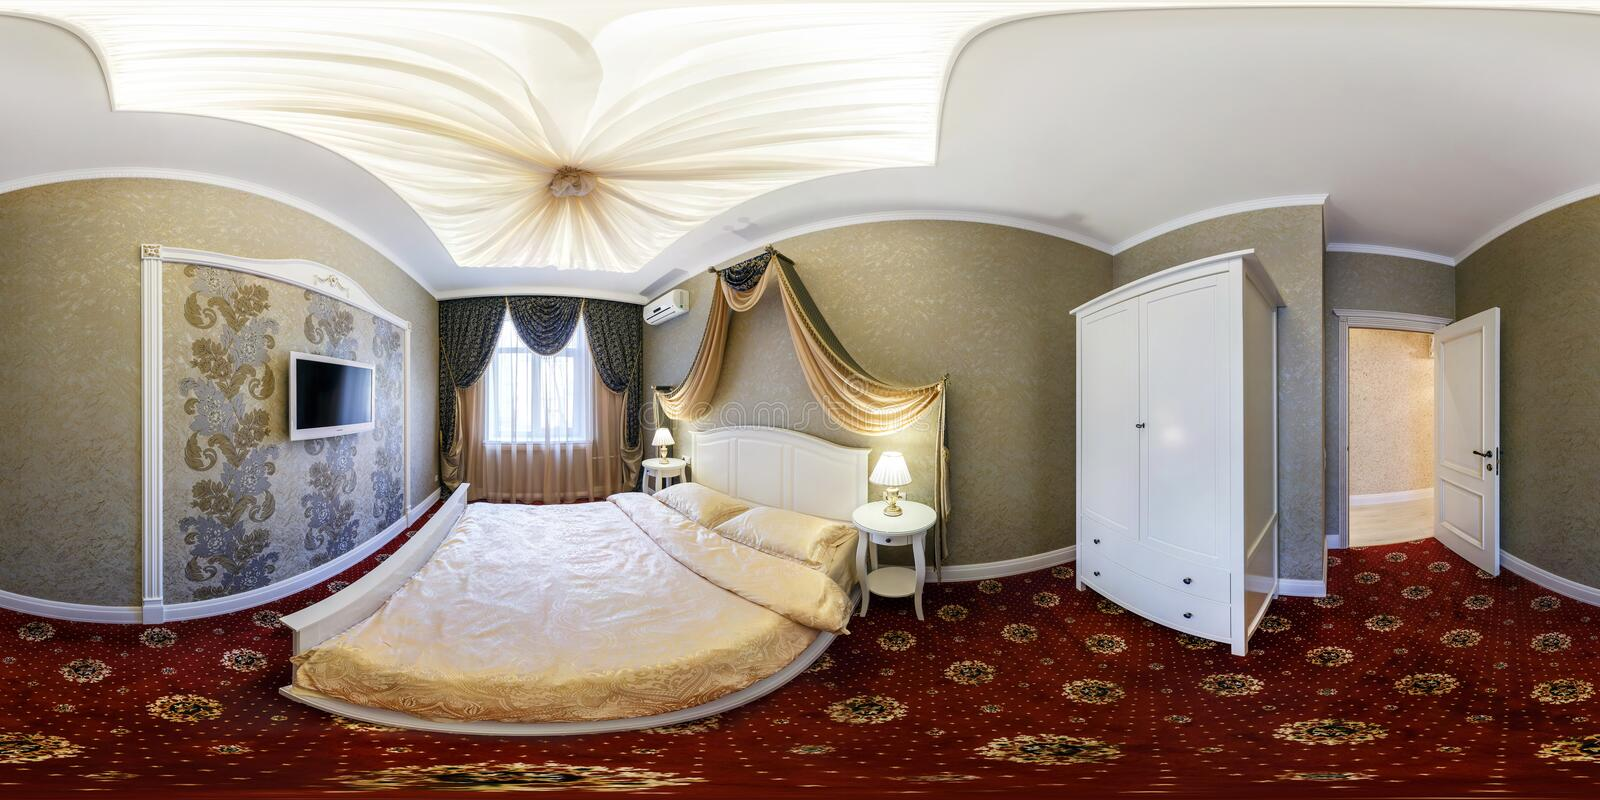 MINSK, BELARUS - FEBRUARY 27, 2014: Full spherical 360 by 180 degrees seamless panorama in equirectangular equidistant projection. Panorama in interior bedroom stock photos